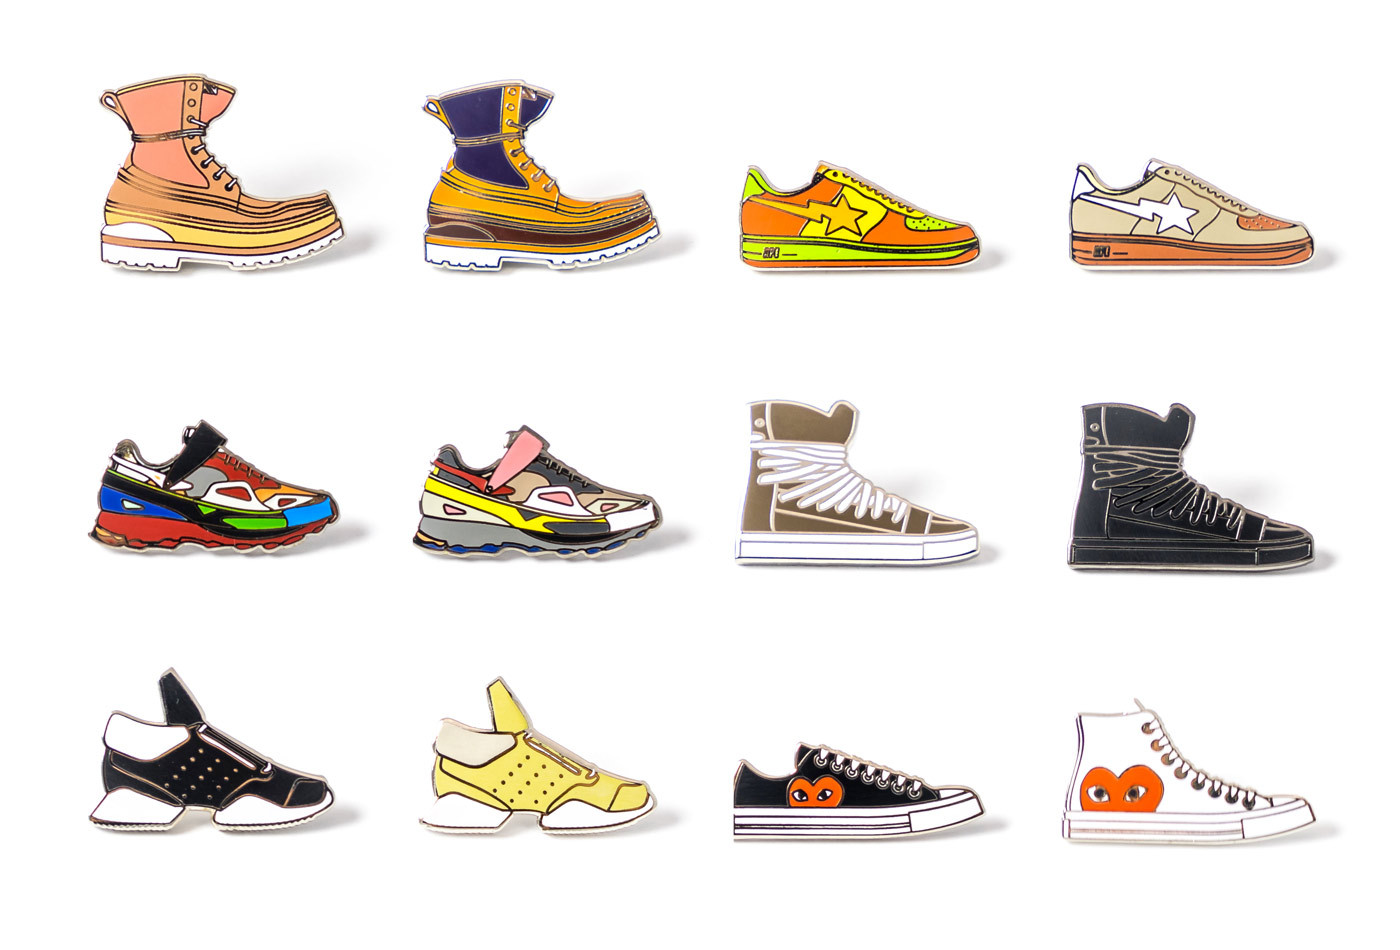 http://www.pintrill.com/collections/homepage-collection/products/sneaker-collection-ii-pack?variant=13782642948